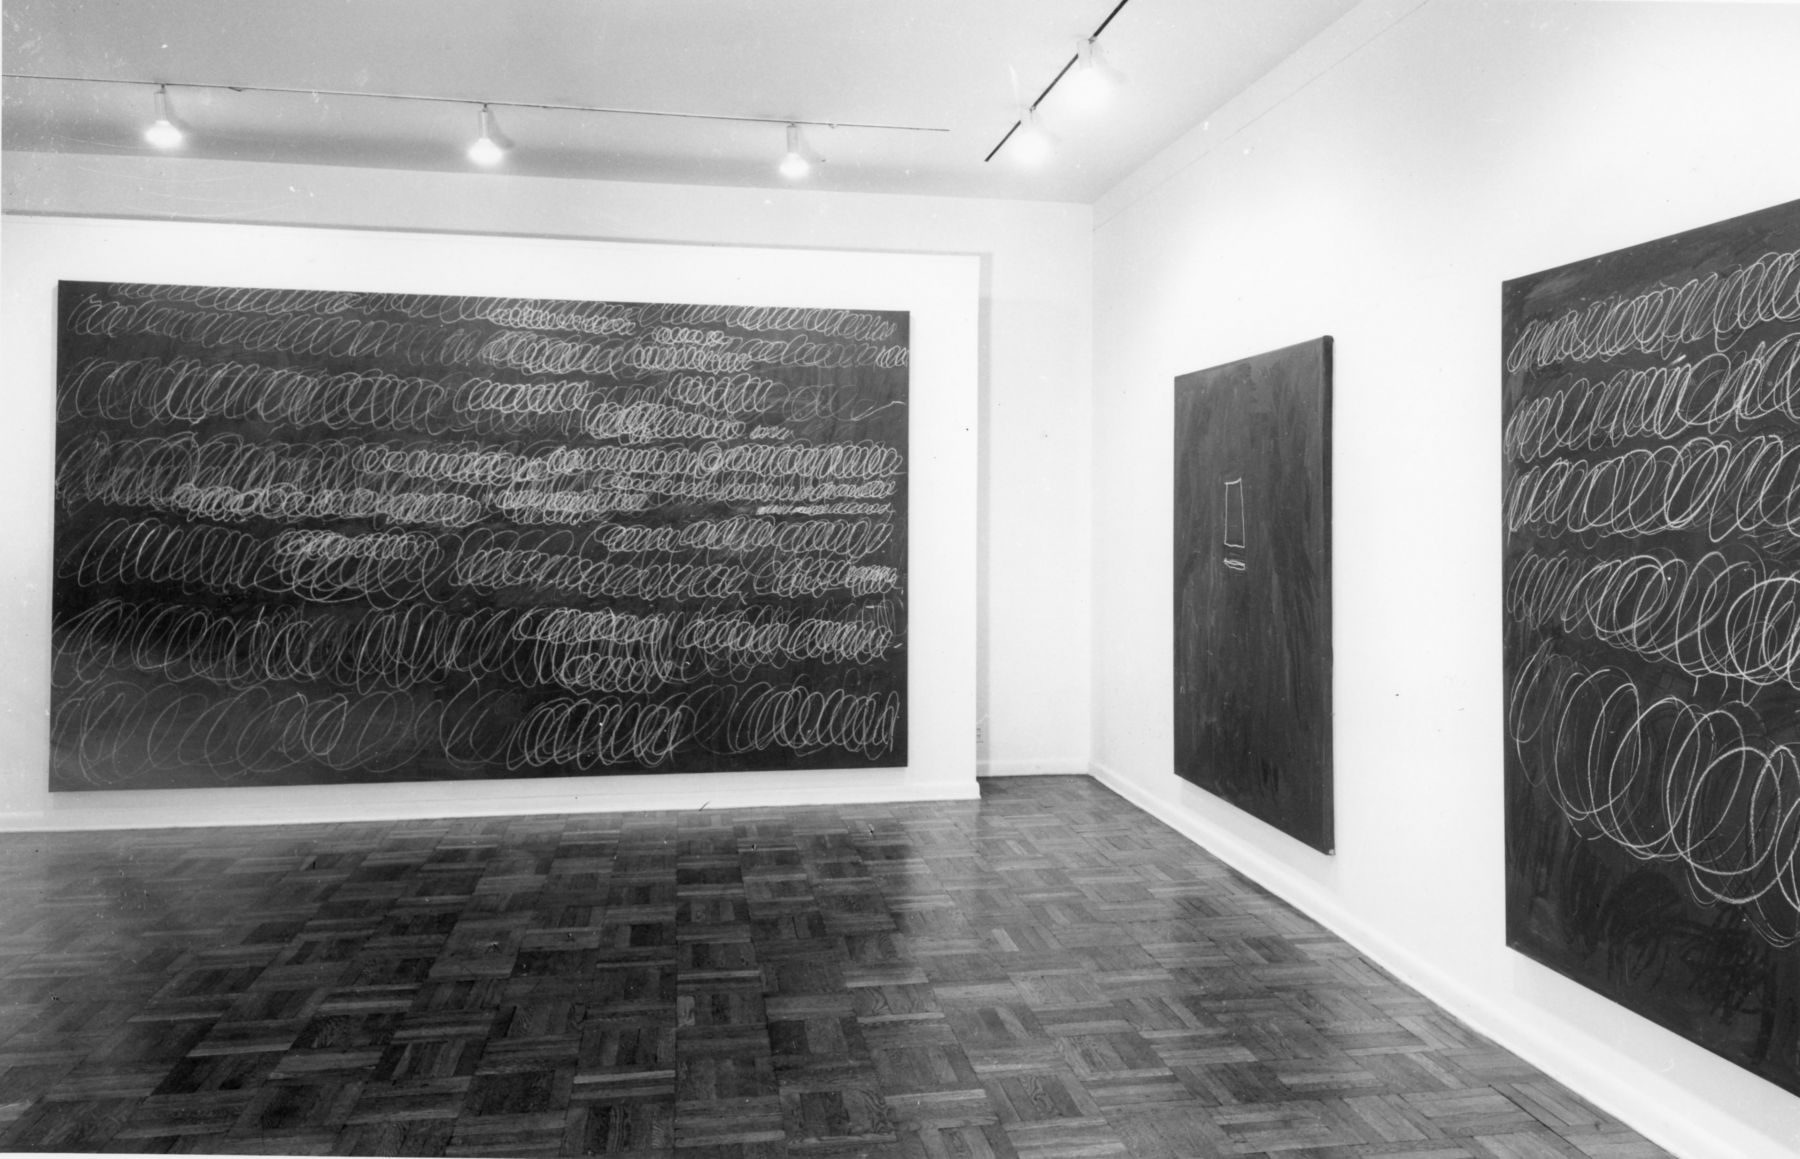 Installation view, Cy Twombly, 4 EAST 77